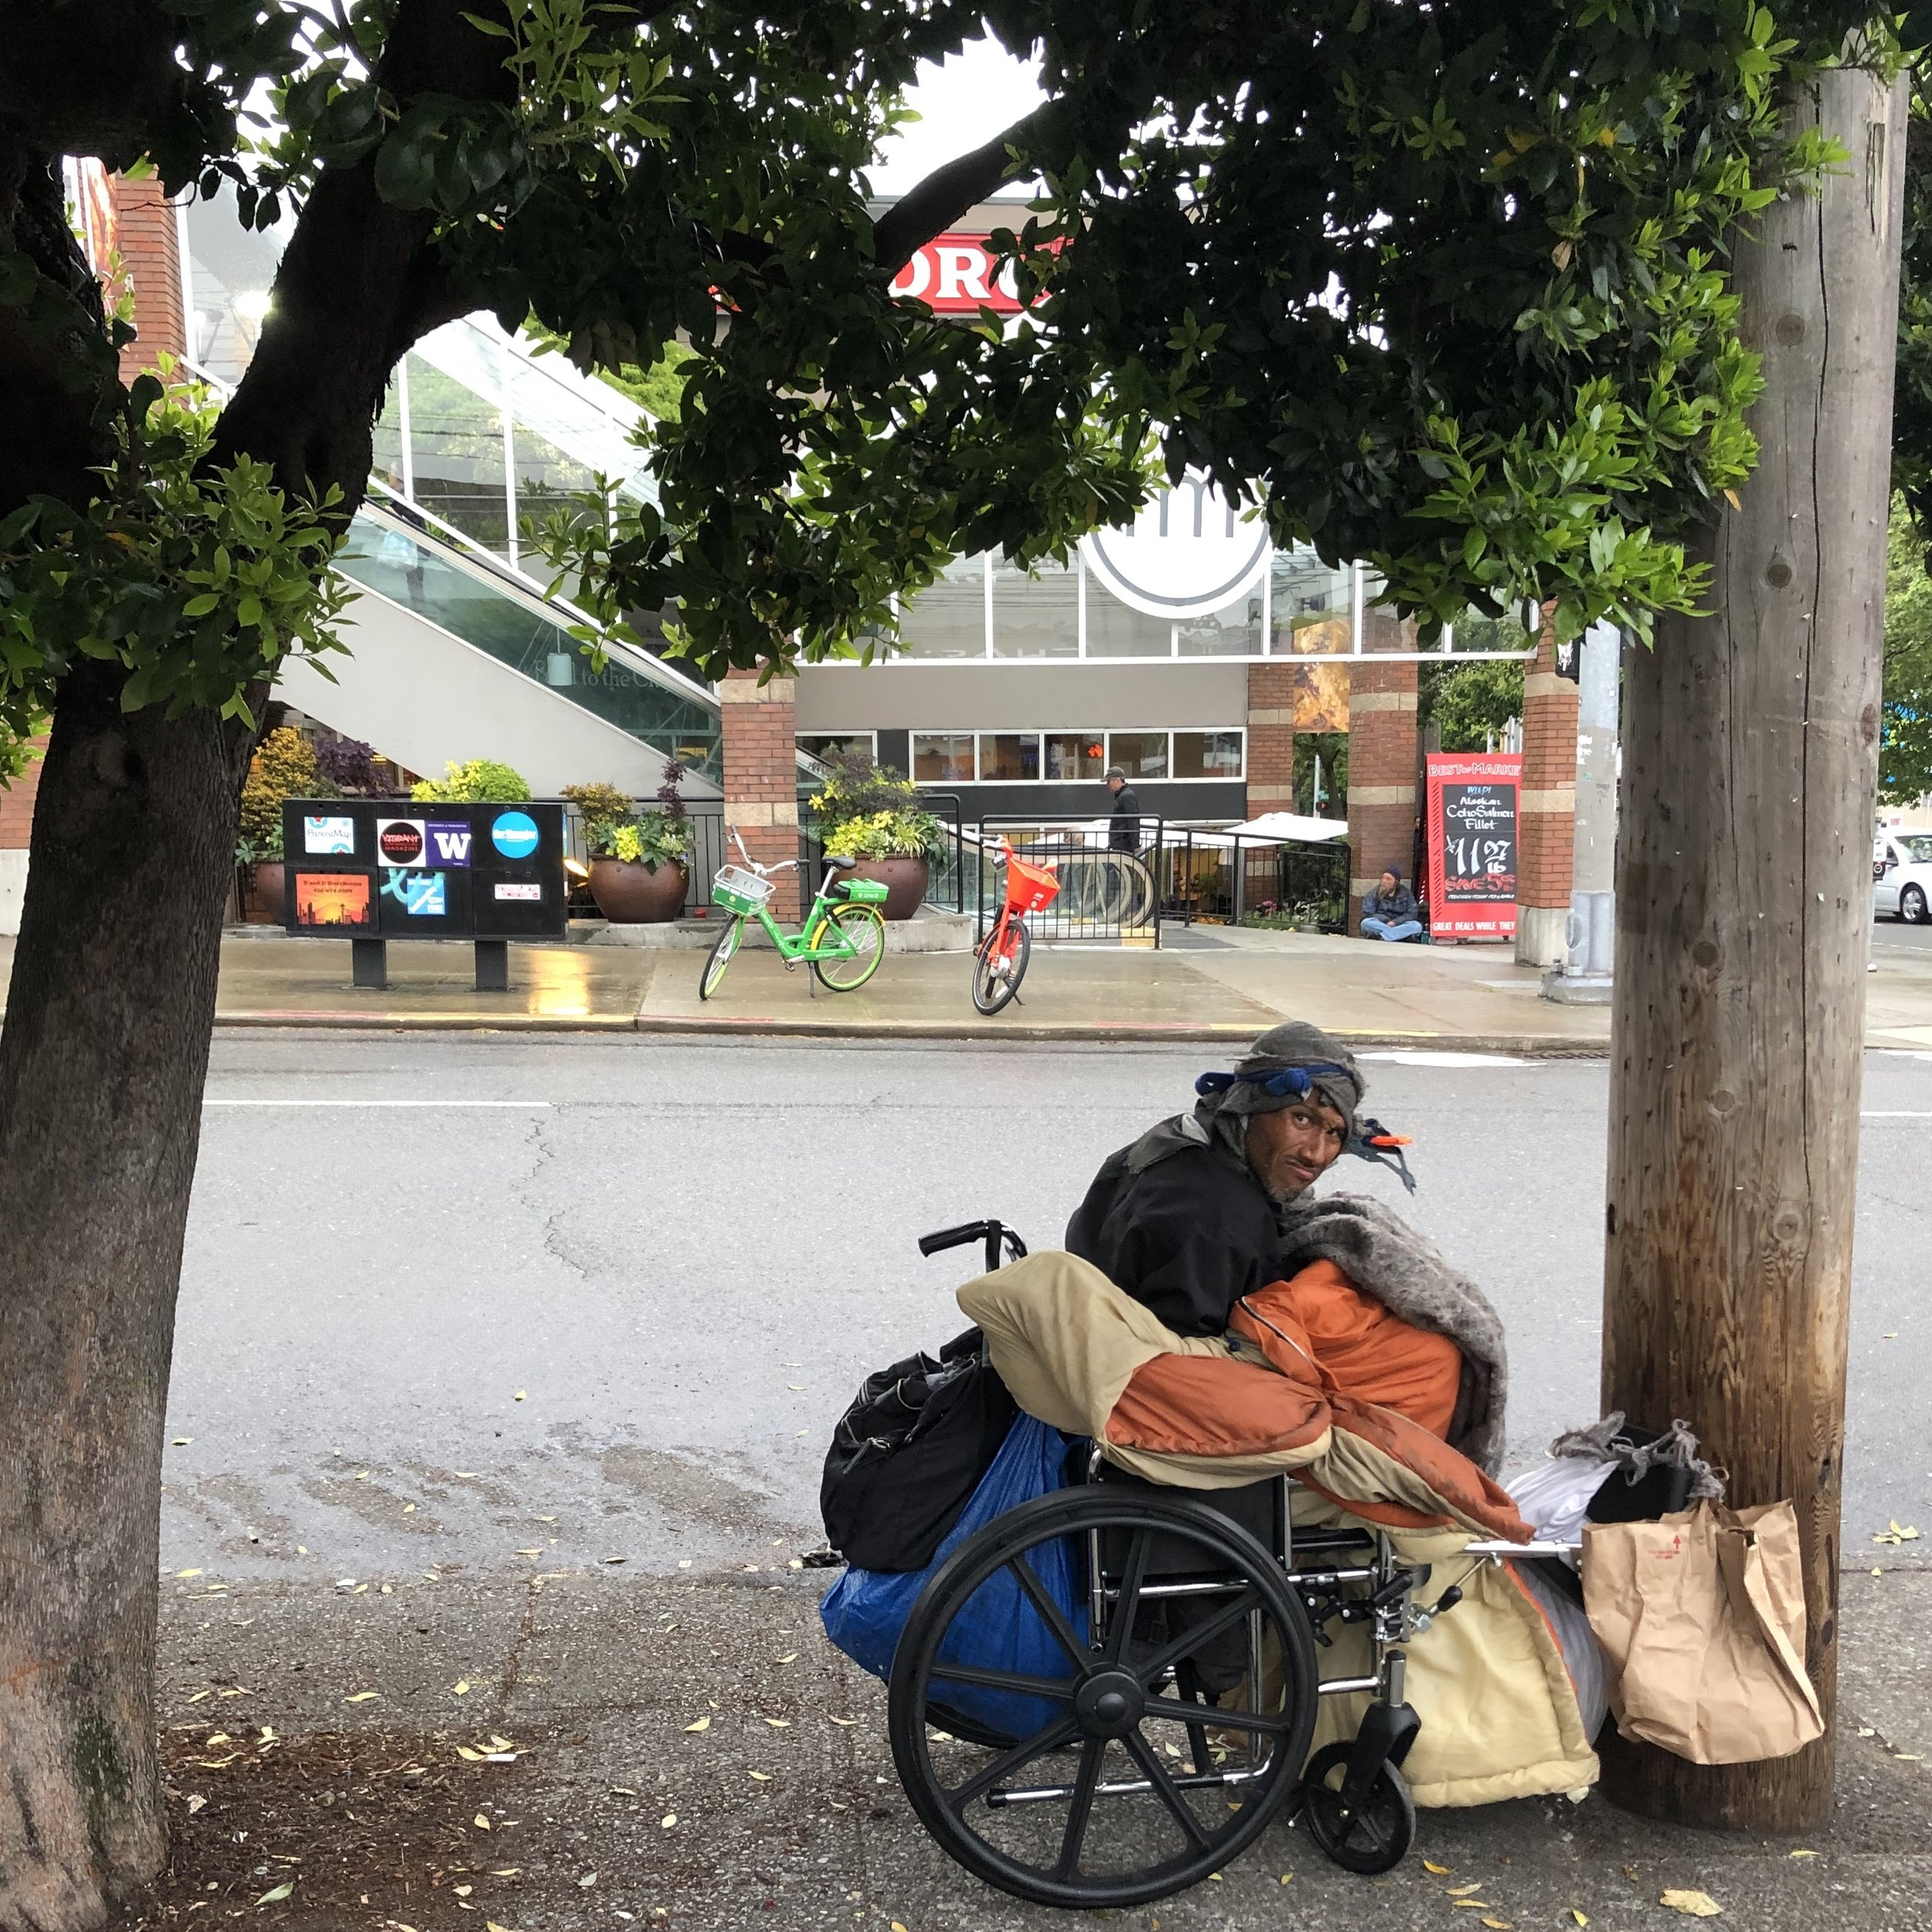 2019-05-15 - Homeless Michael at NW corner of st Ave North and Mercer St .jpg